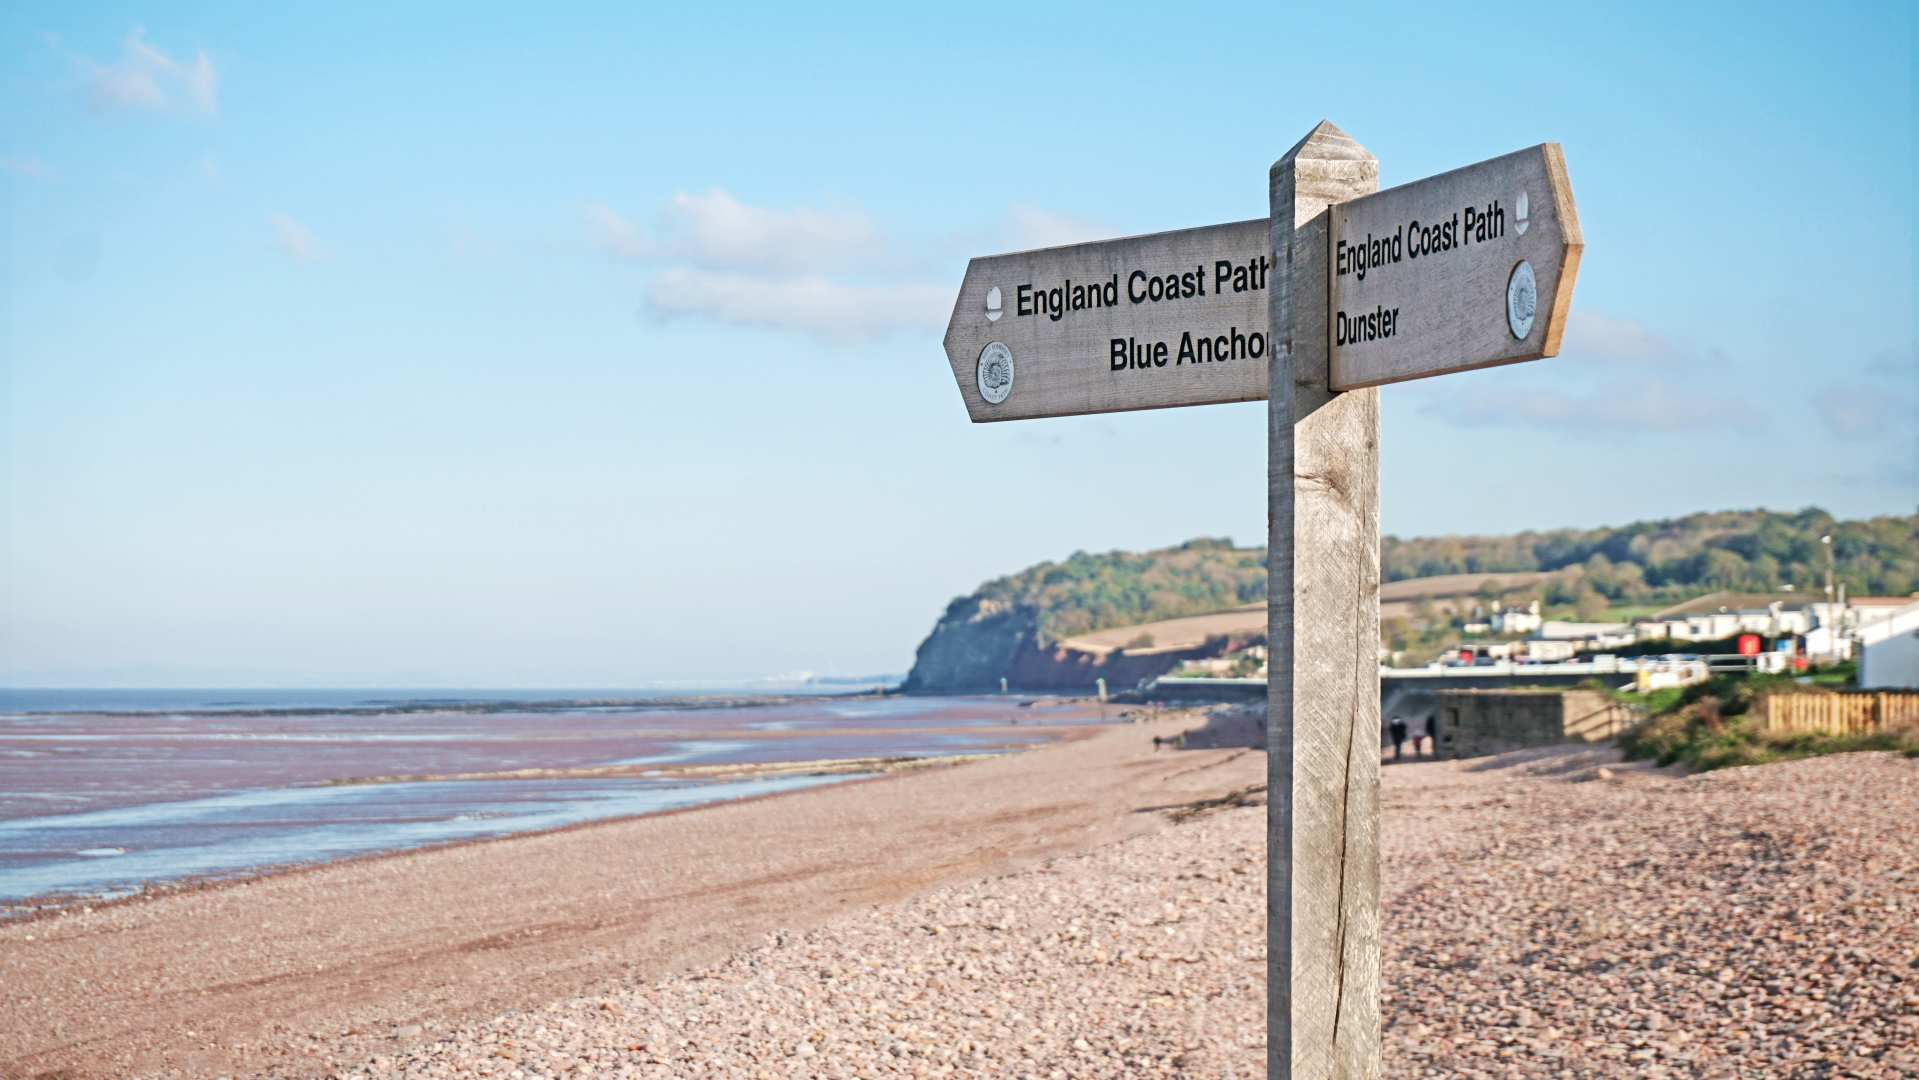 The England Coast Path - The World's Longest Coastal Path